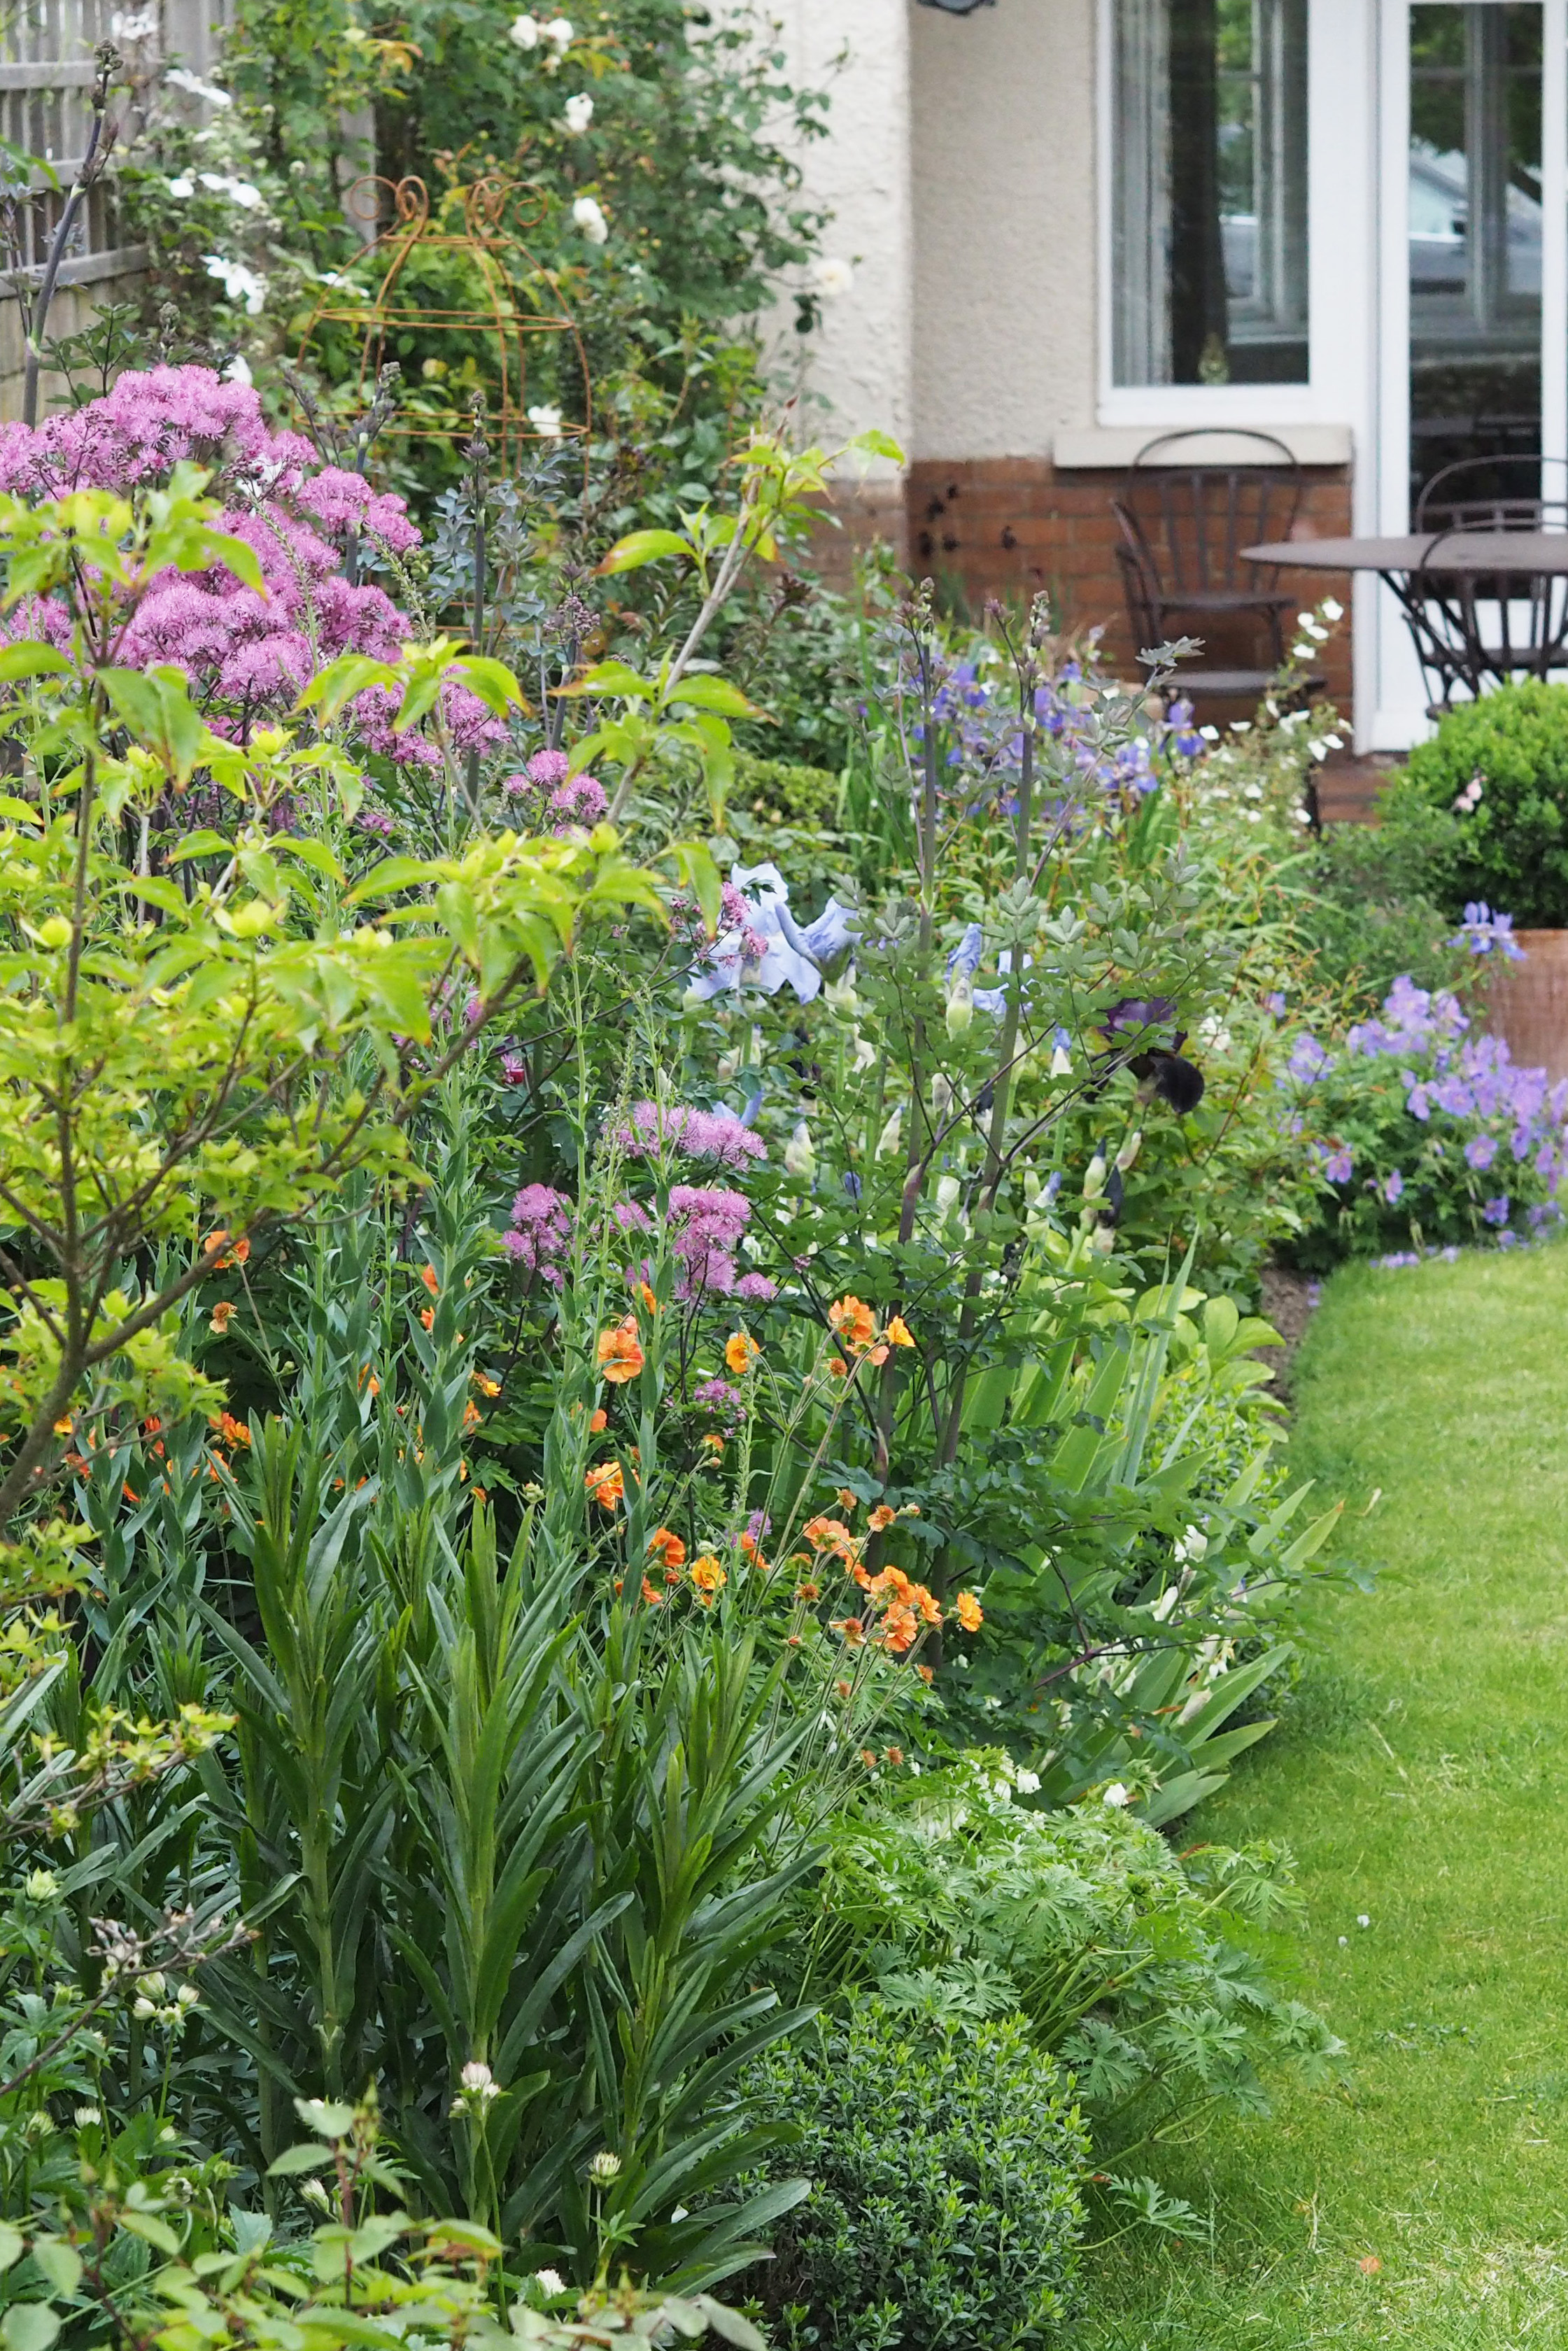 How to start a successful garden from scratch the middle sized garden gardening blog for How to start a garden from scratch